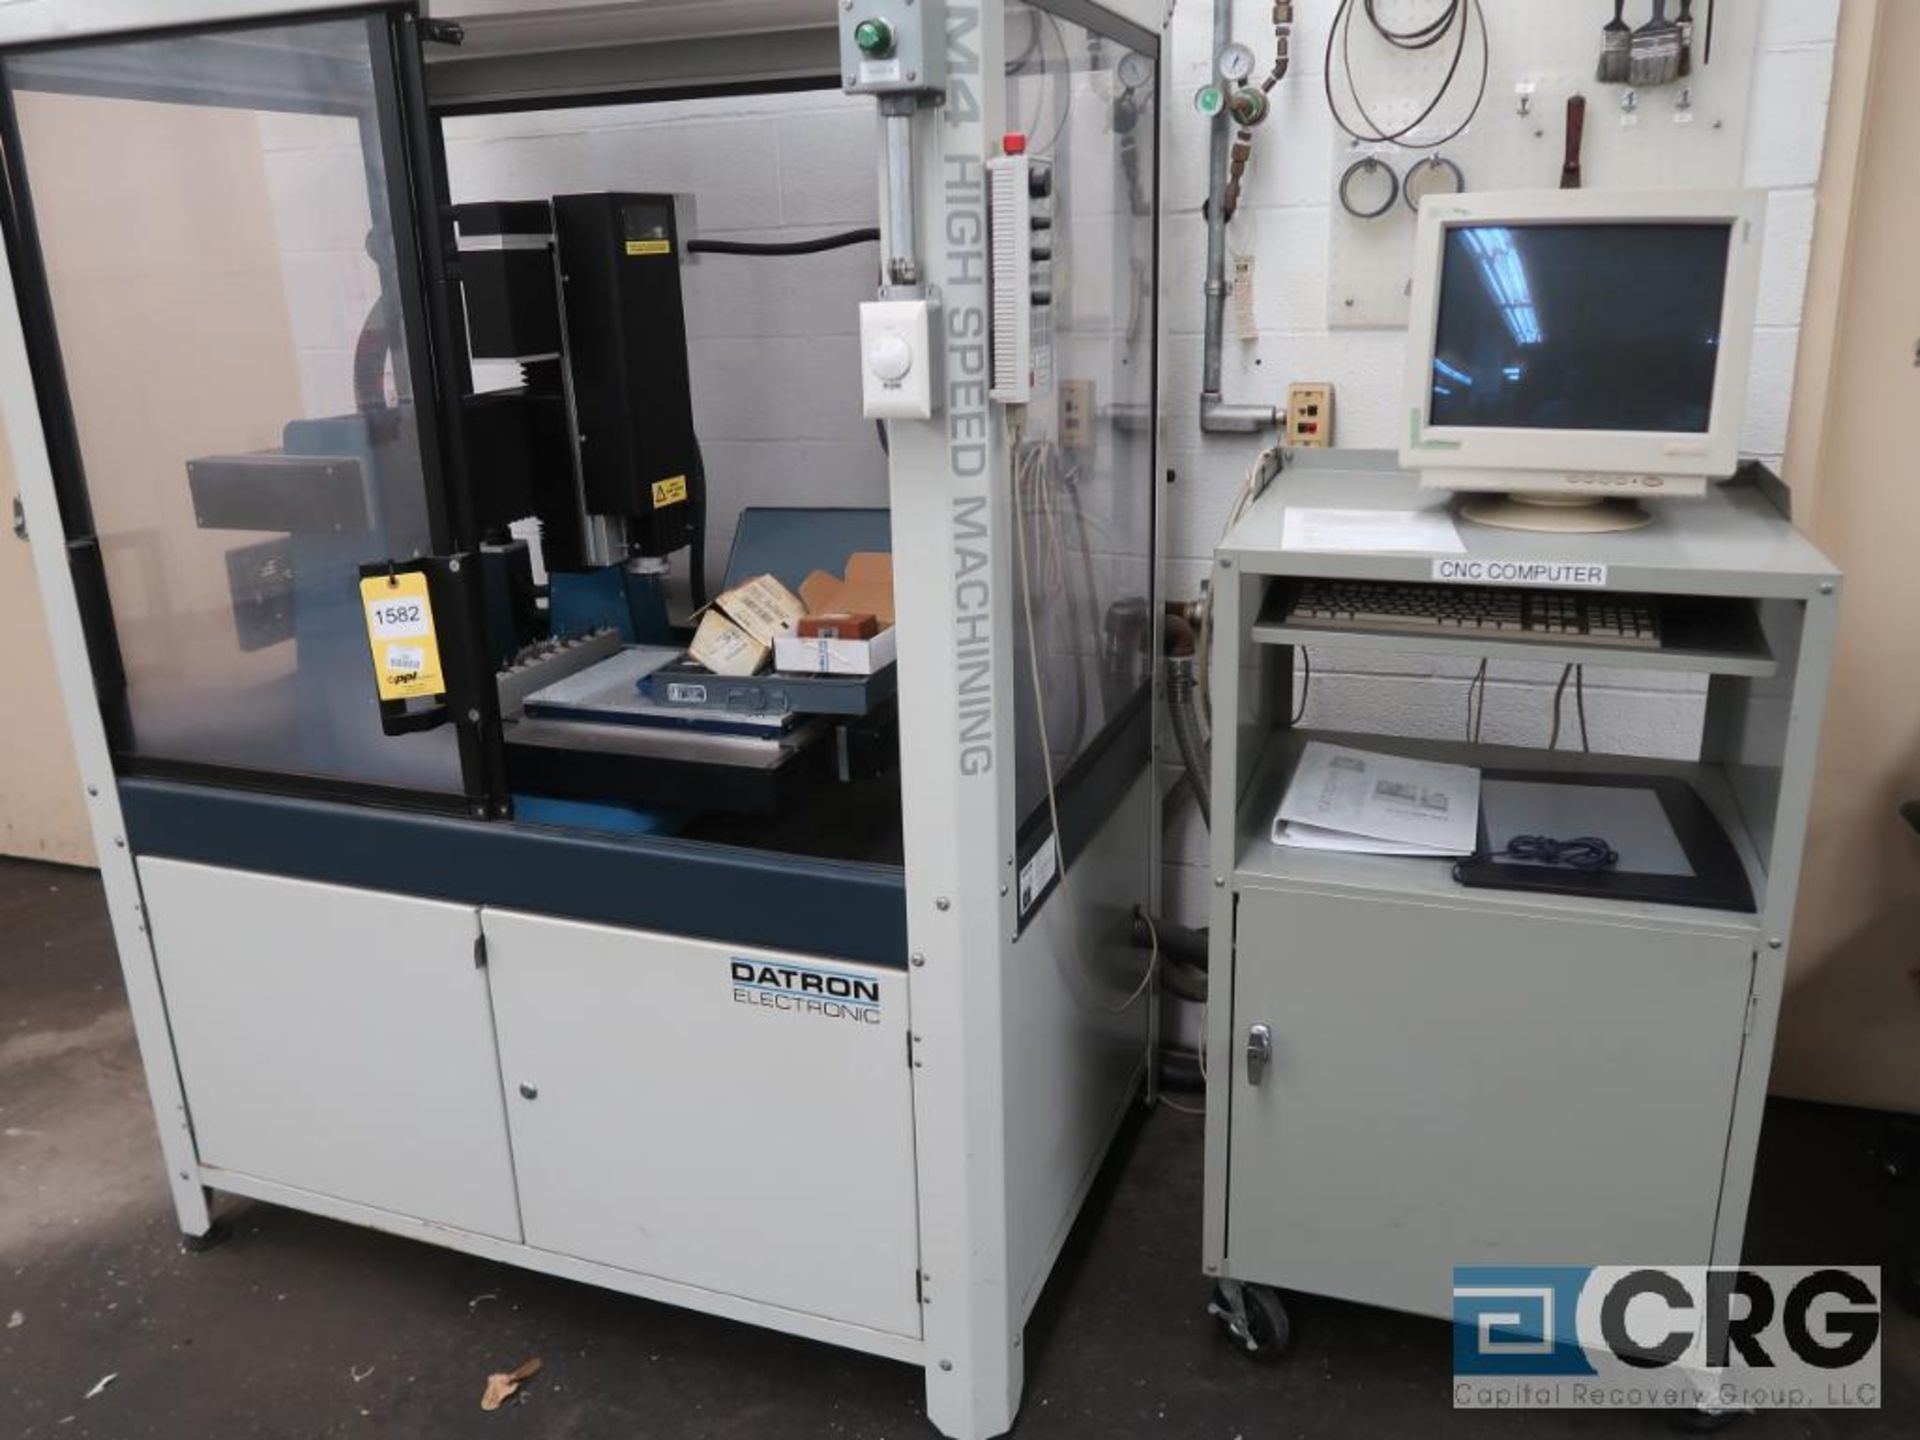 2001 Datron illing engraving center, m/n CAT3D-M4, s/n 40681, 3 axis, CNC, 9 position tool